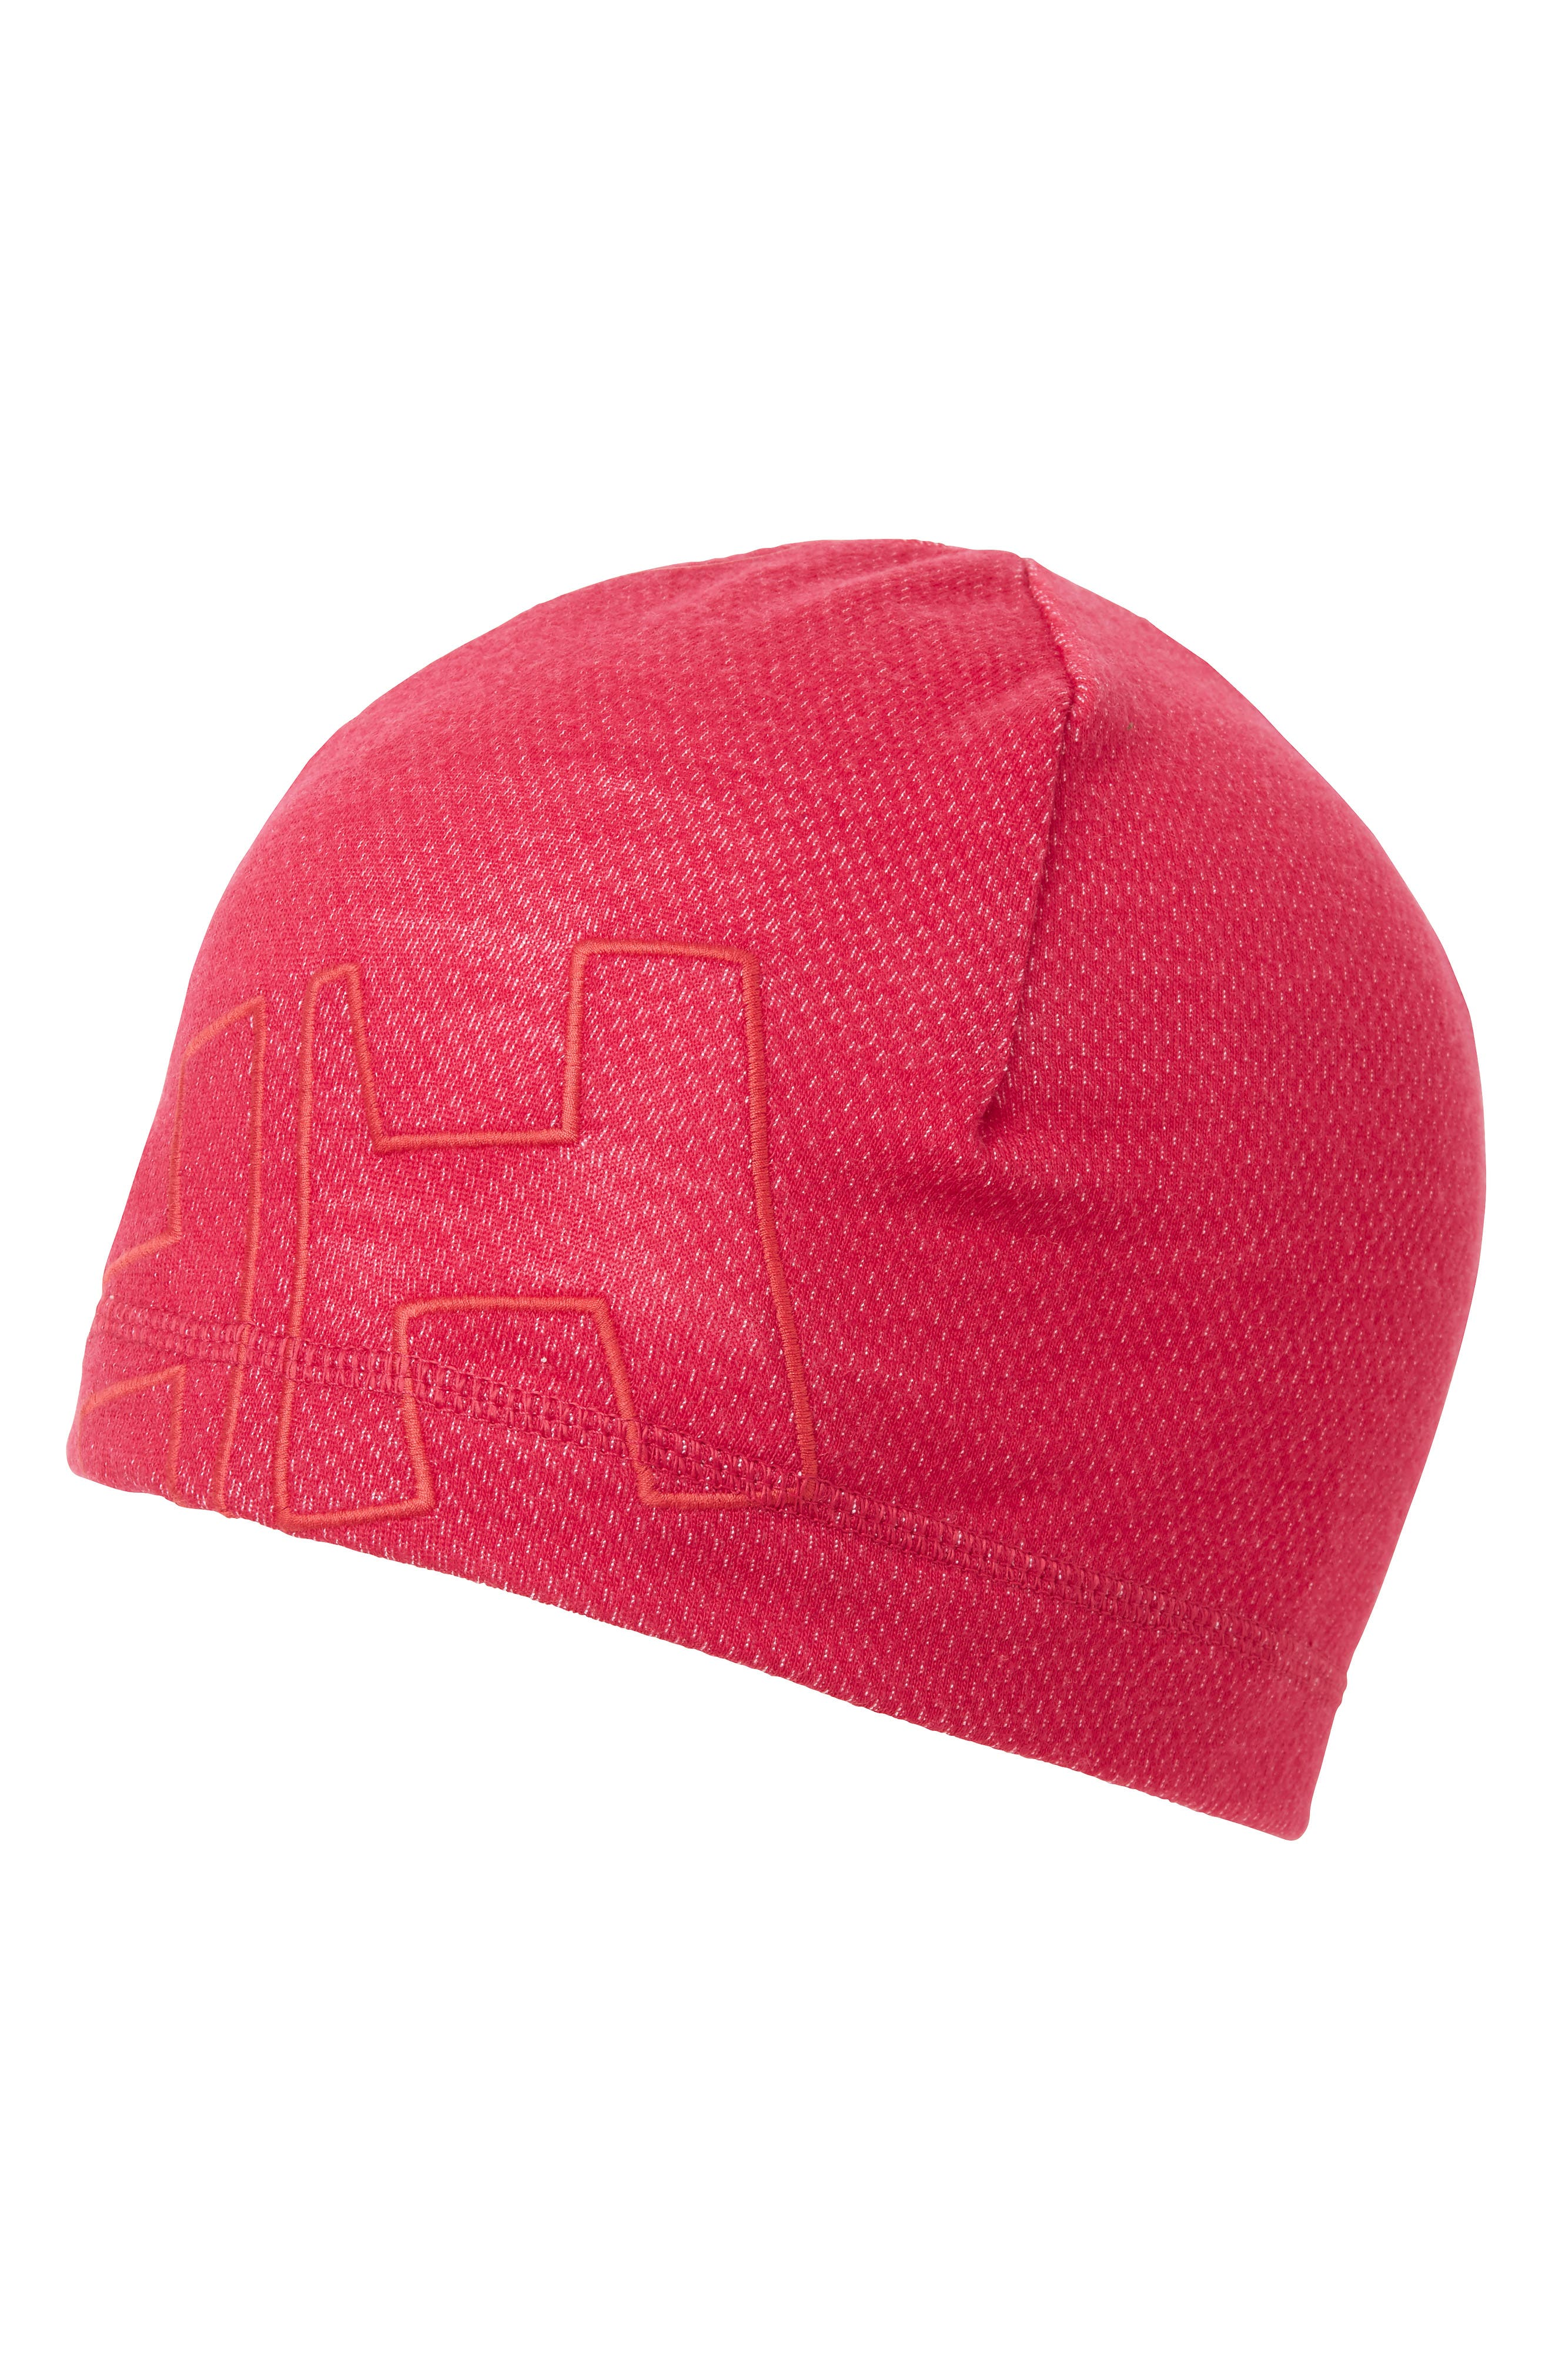 HELLY HANSEN Warm Wool Blend Beanie - Red in Persian Red